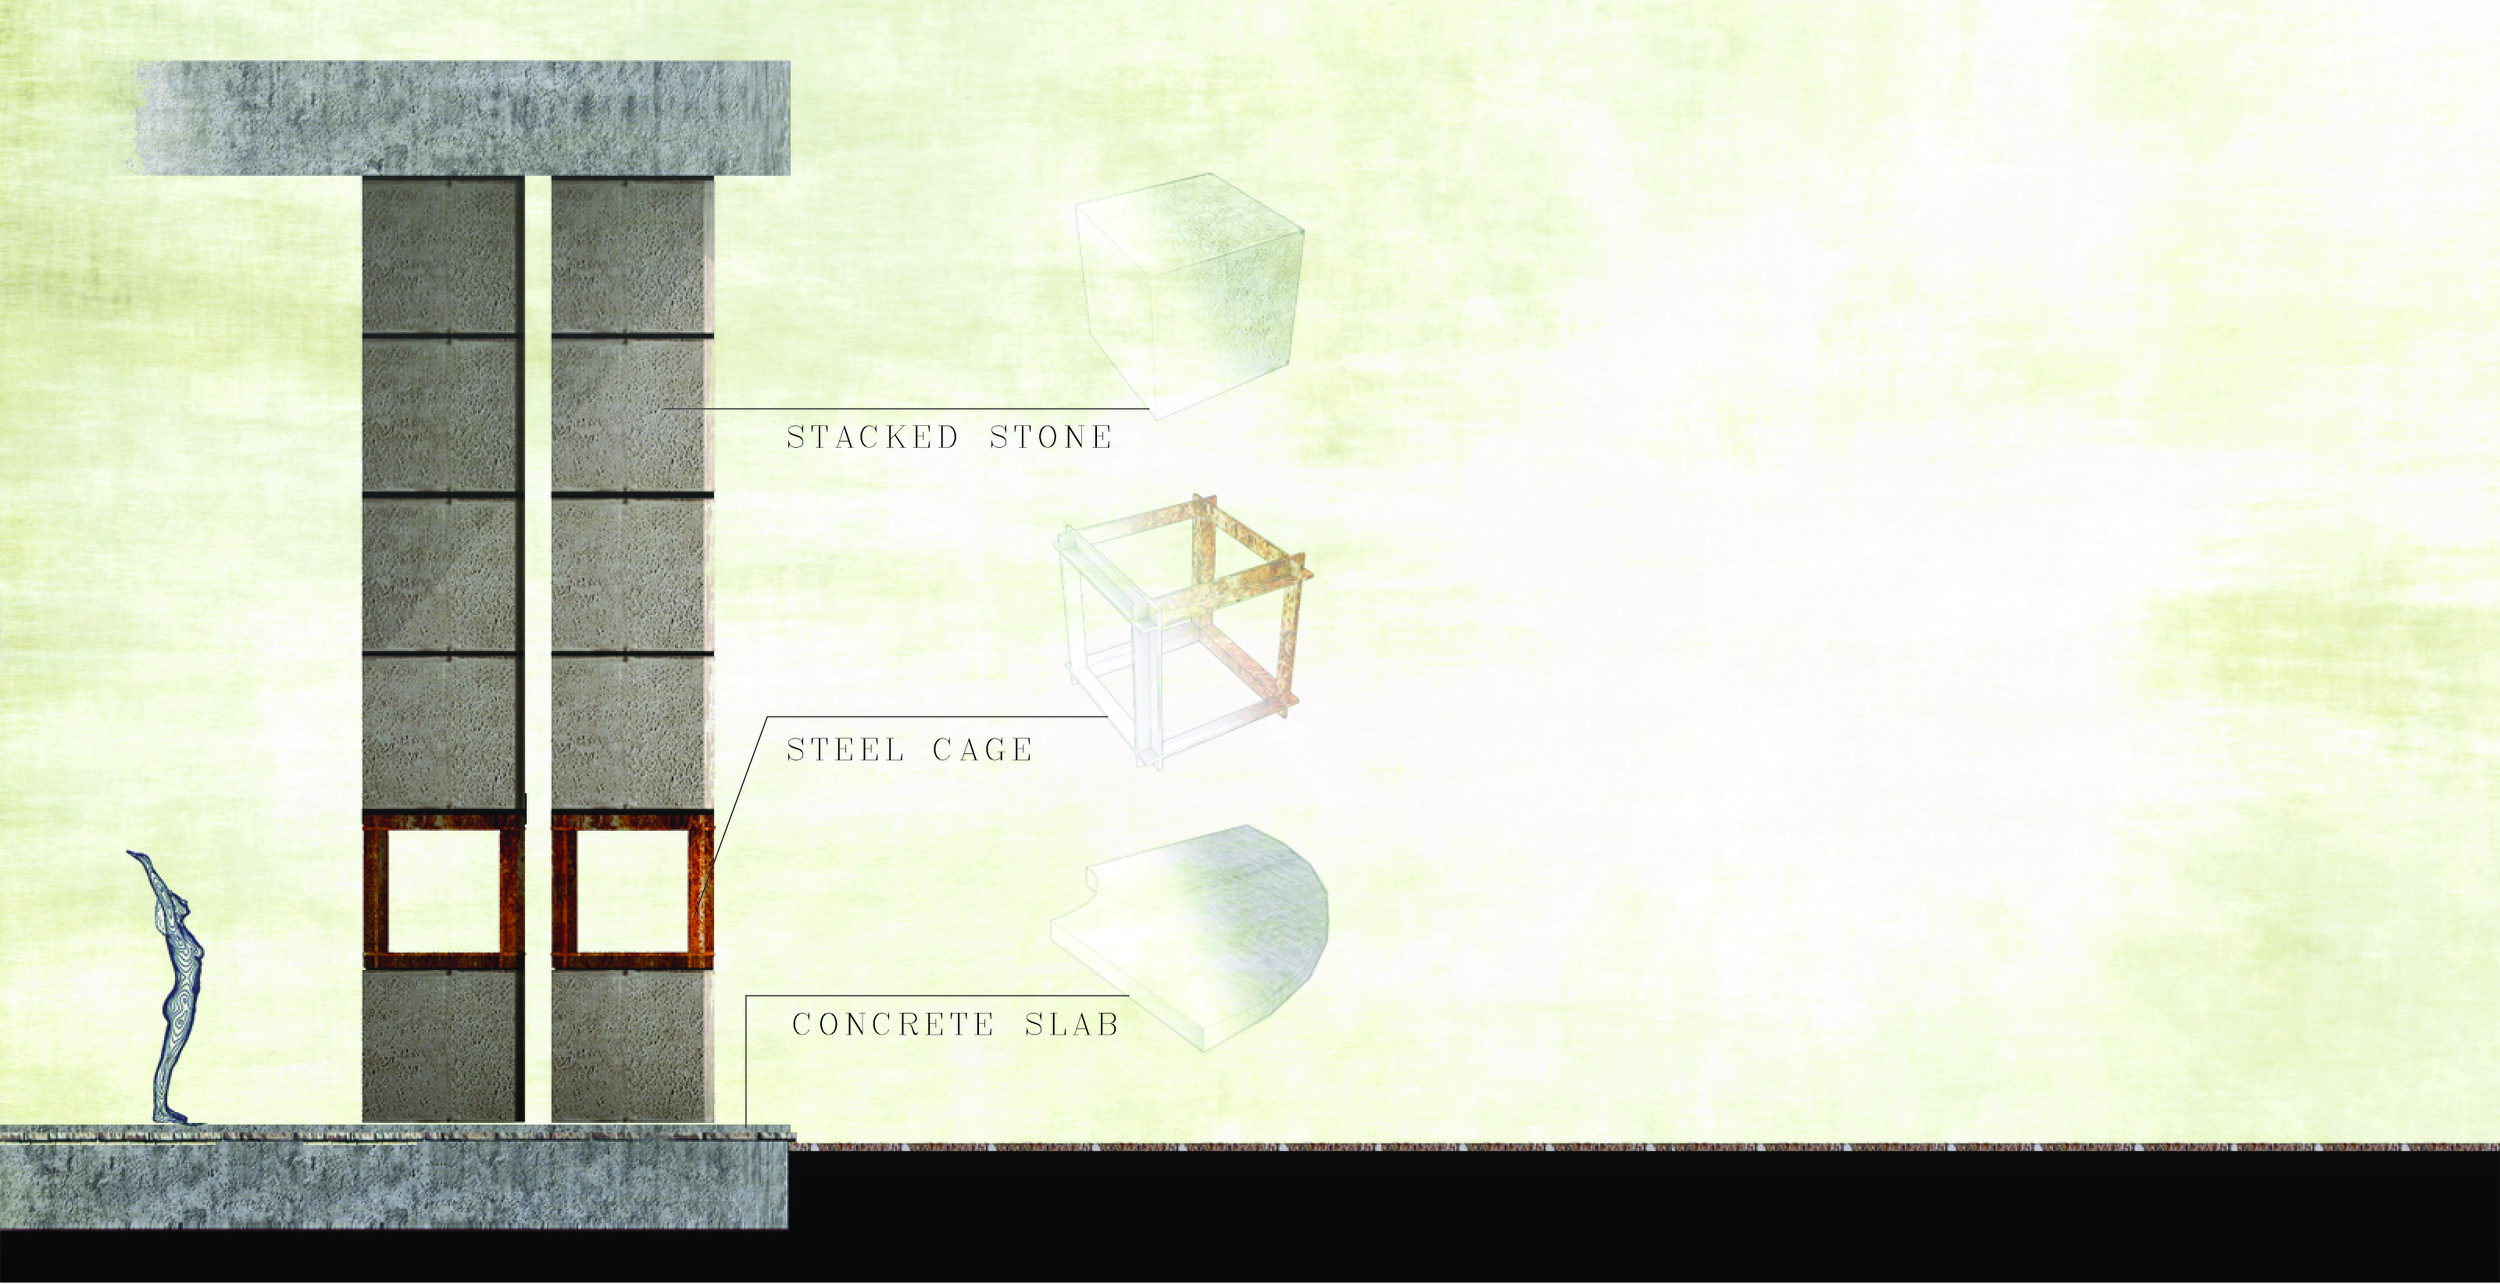 Construction sequence and material elements shown in scale to human.